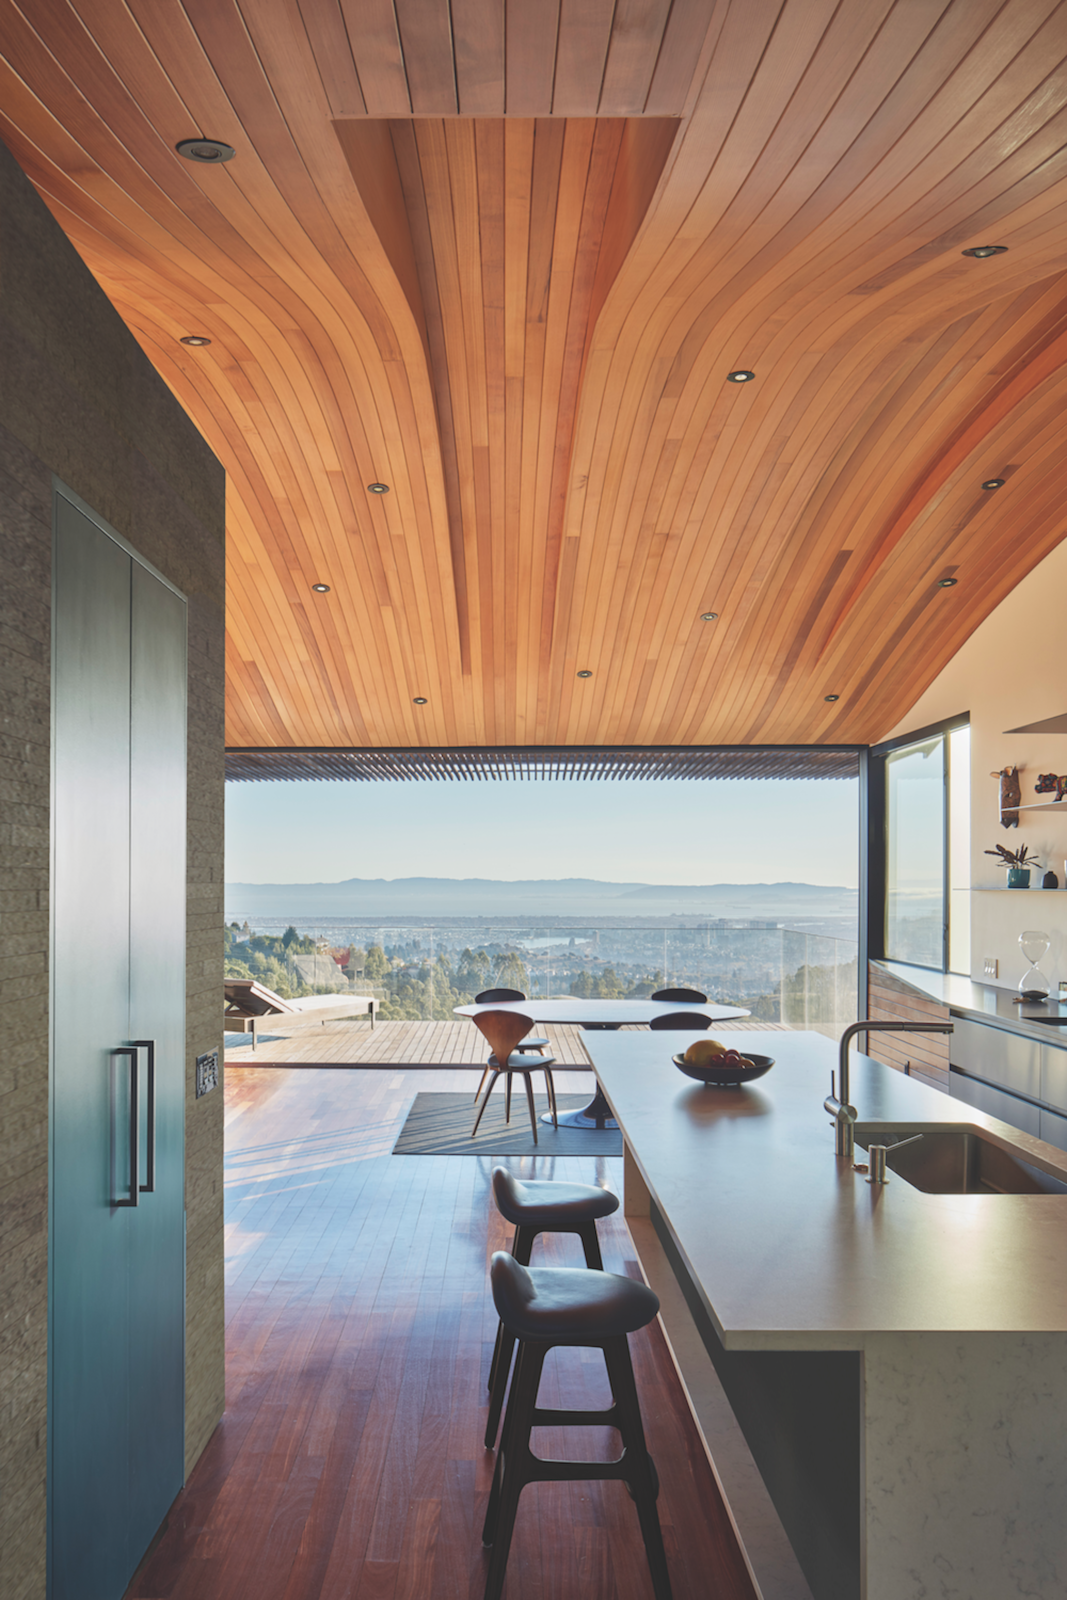 Photo 15 Of 16 In 5 Stunning Uses Of Western Red Cedar Interior Architecture Interior Architecture Design Architecture Design